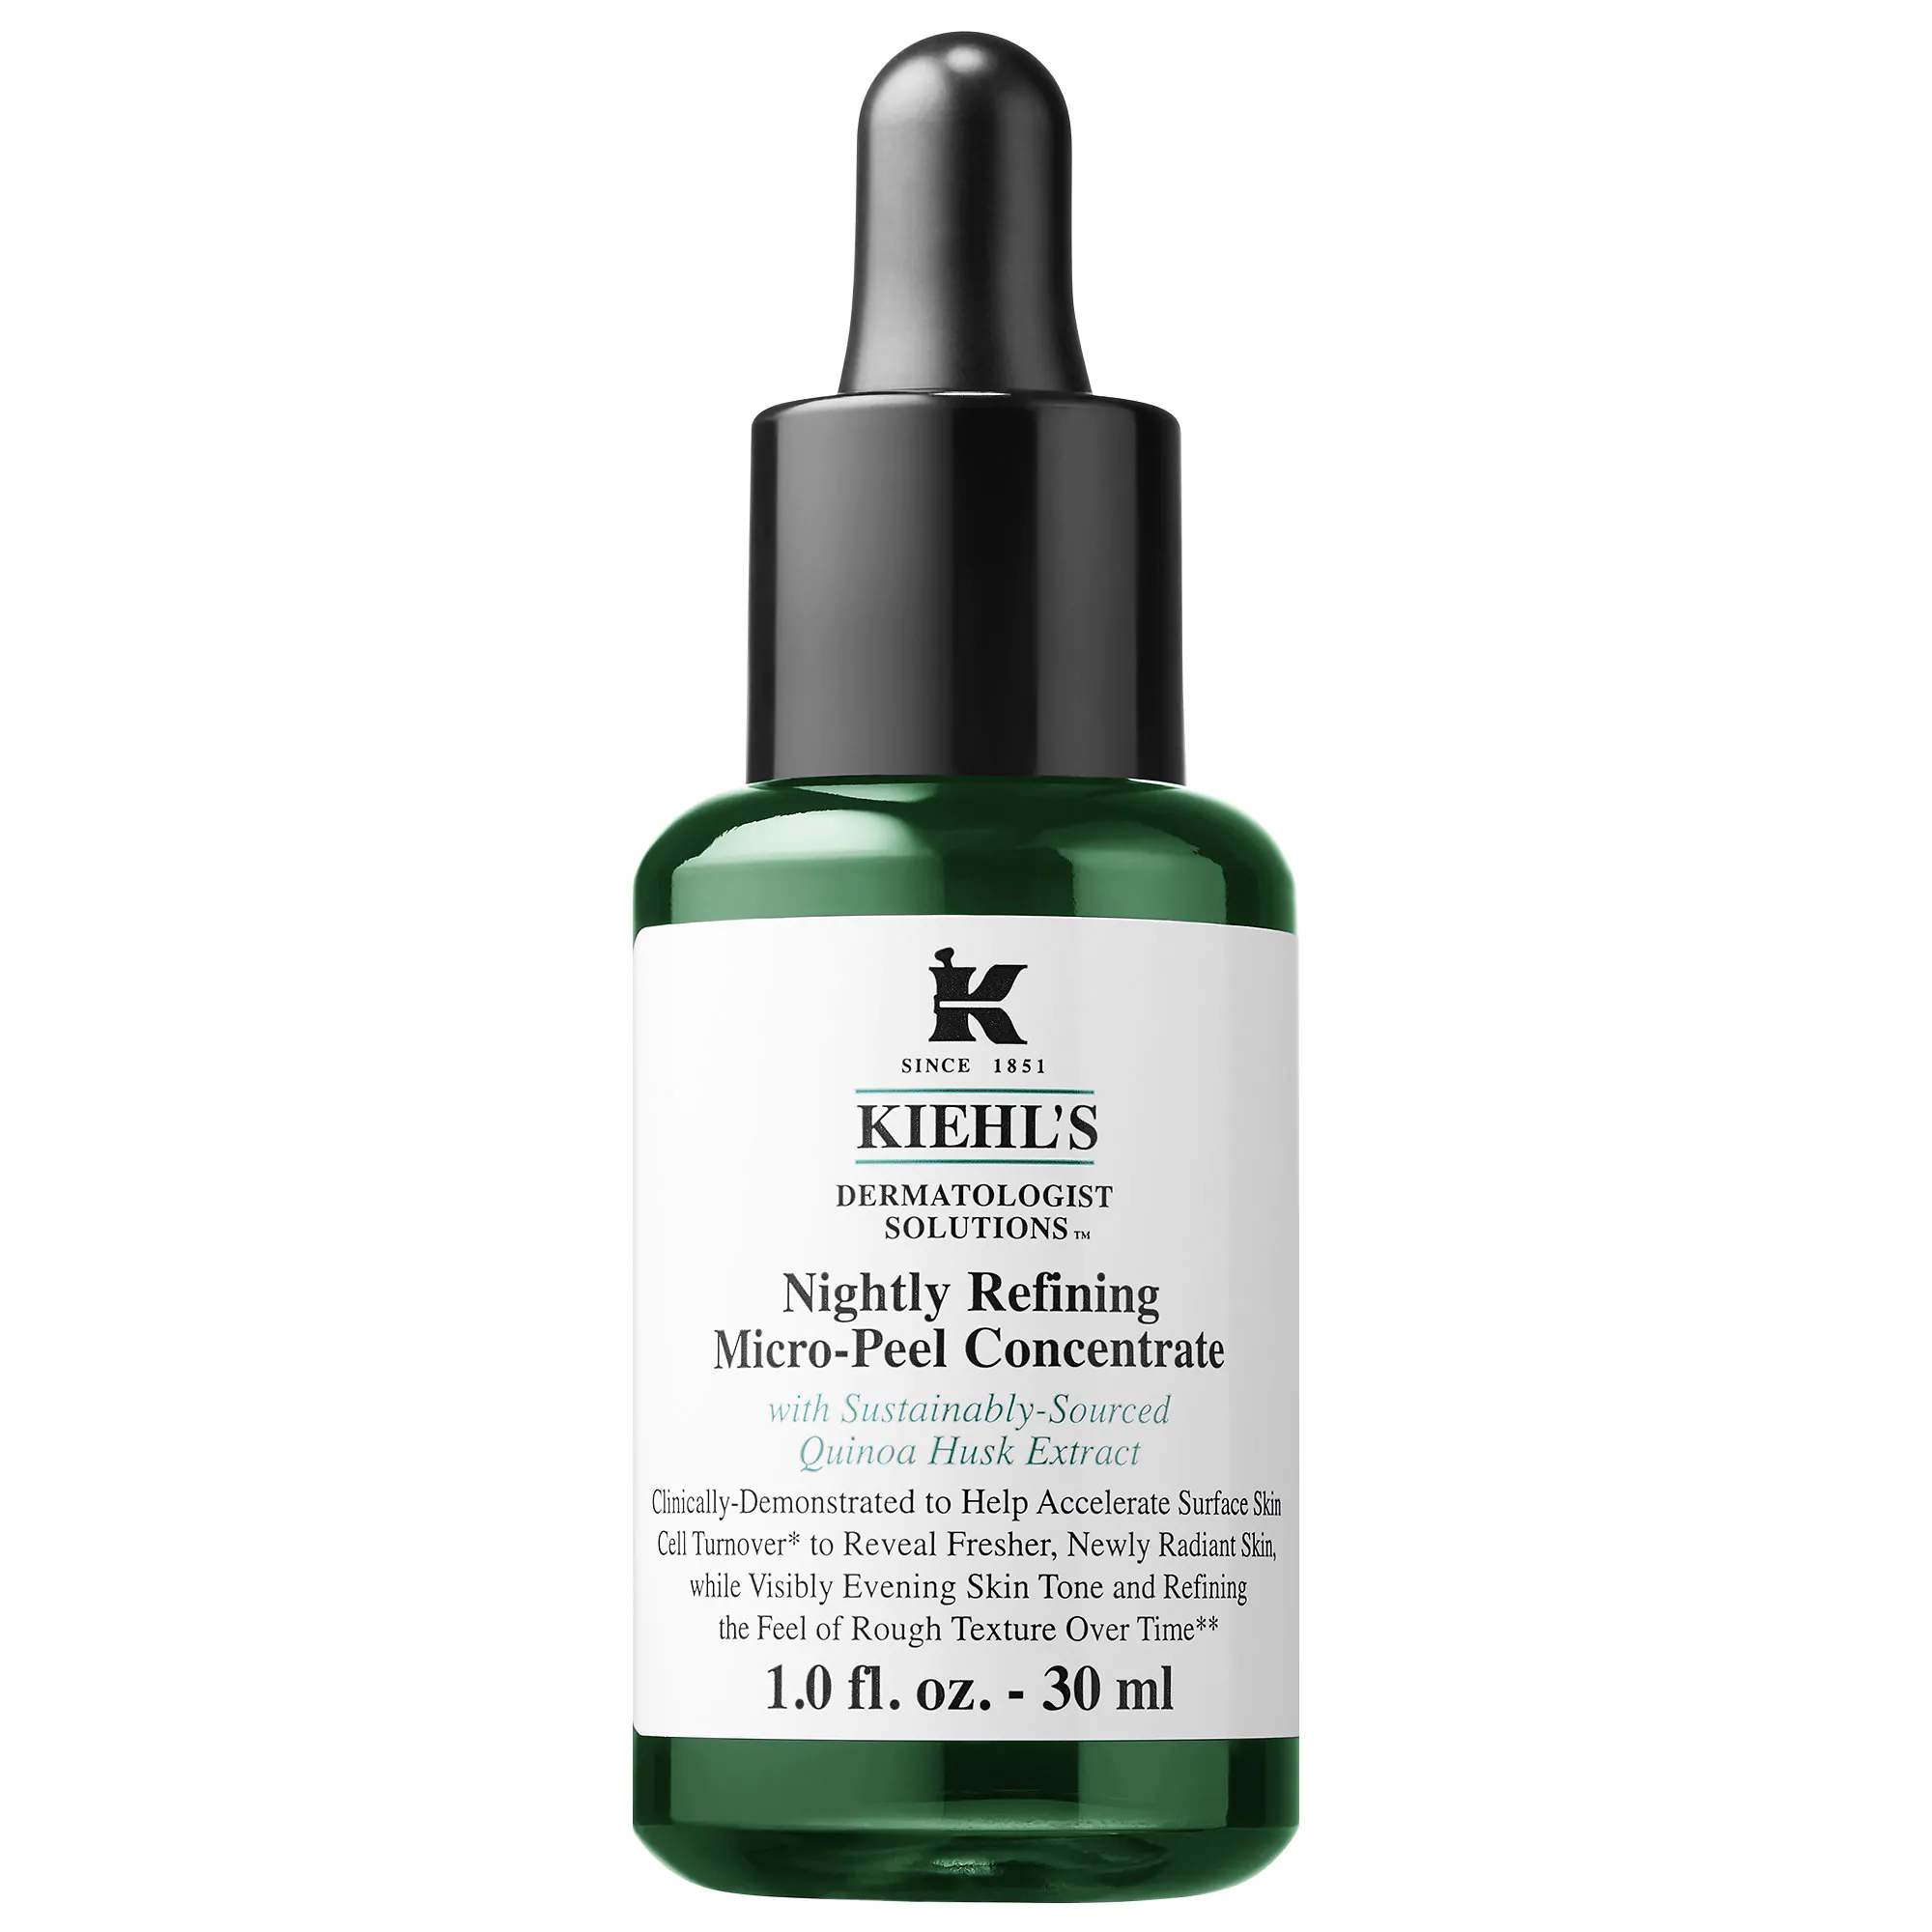 Kiehl's Since 1851 Nightly Refining Micro-Peel Concentrate